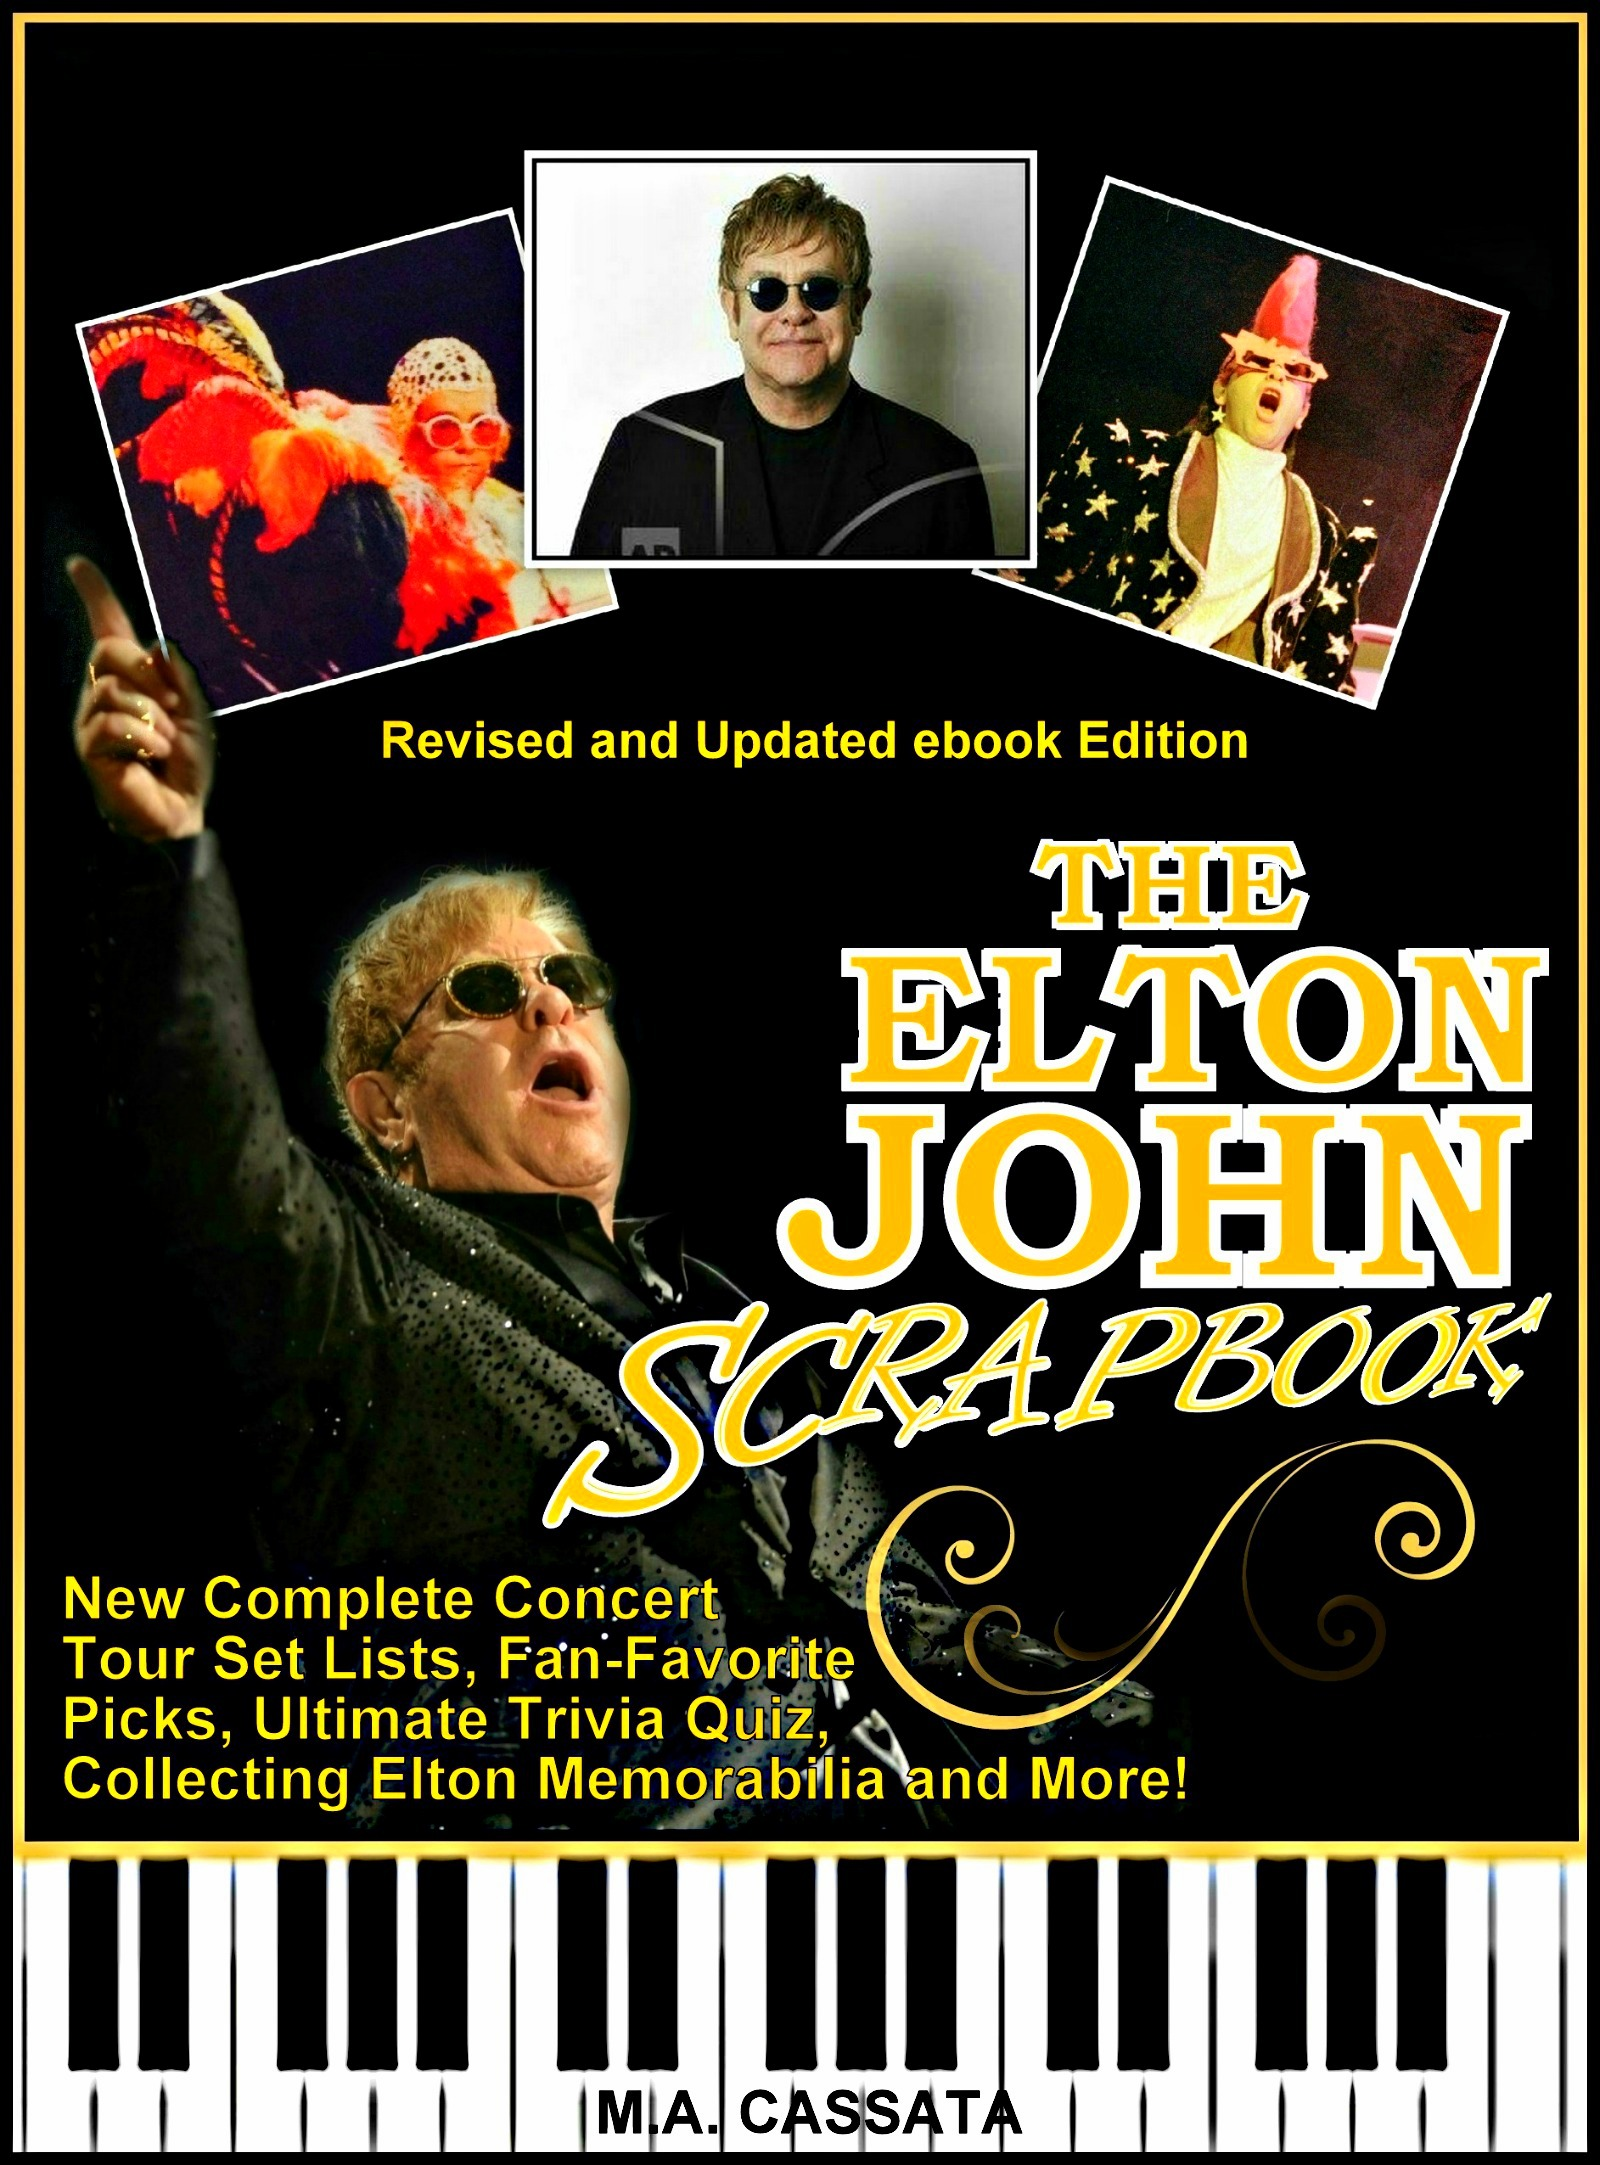 The Elton John Scrapbook: Revised And Updated Ebook Edition